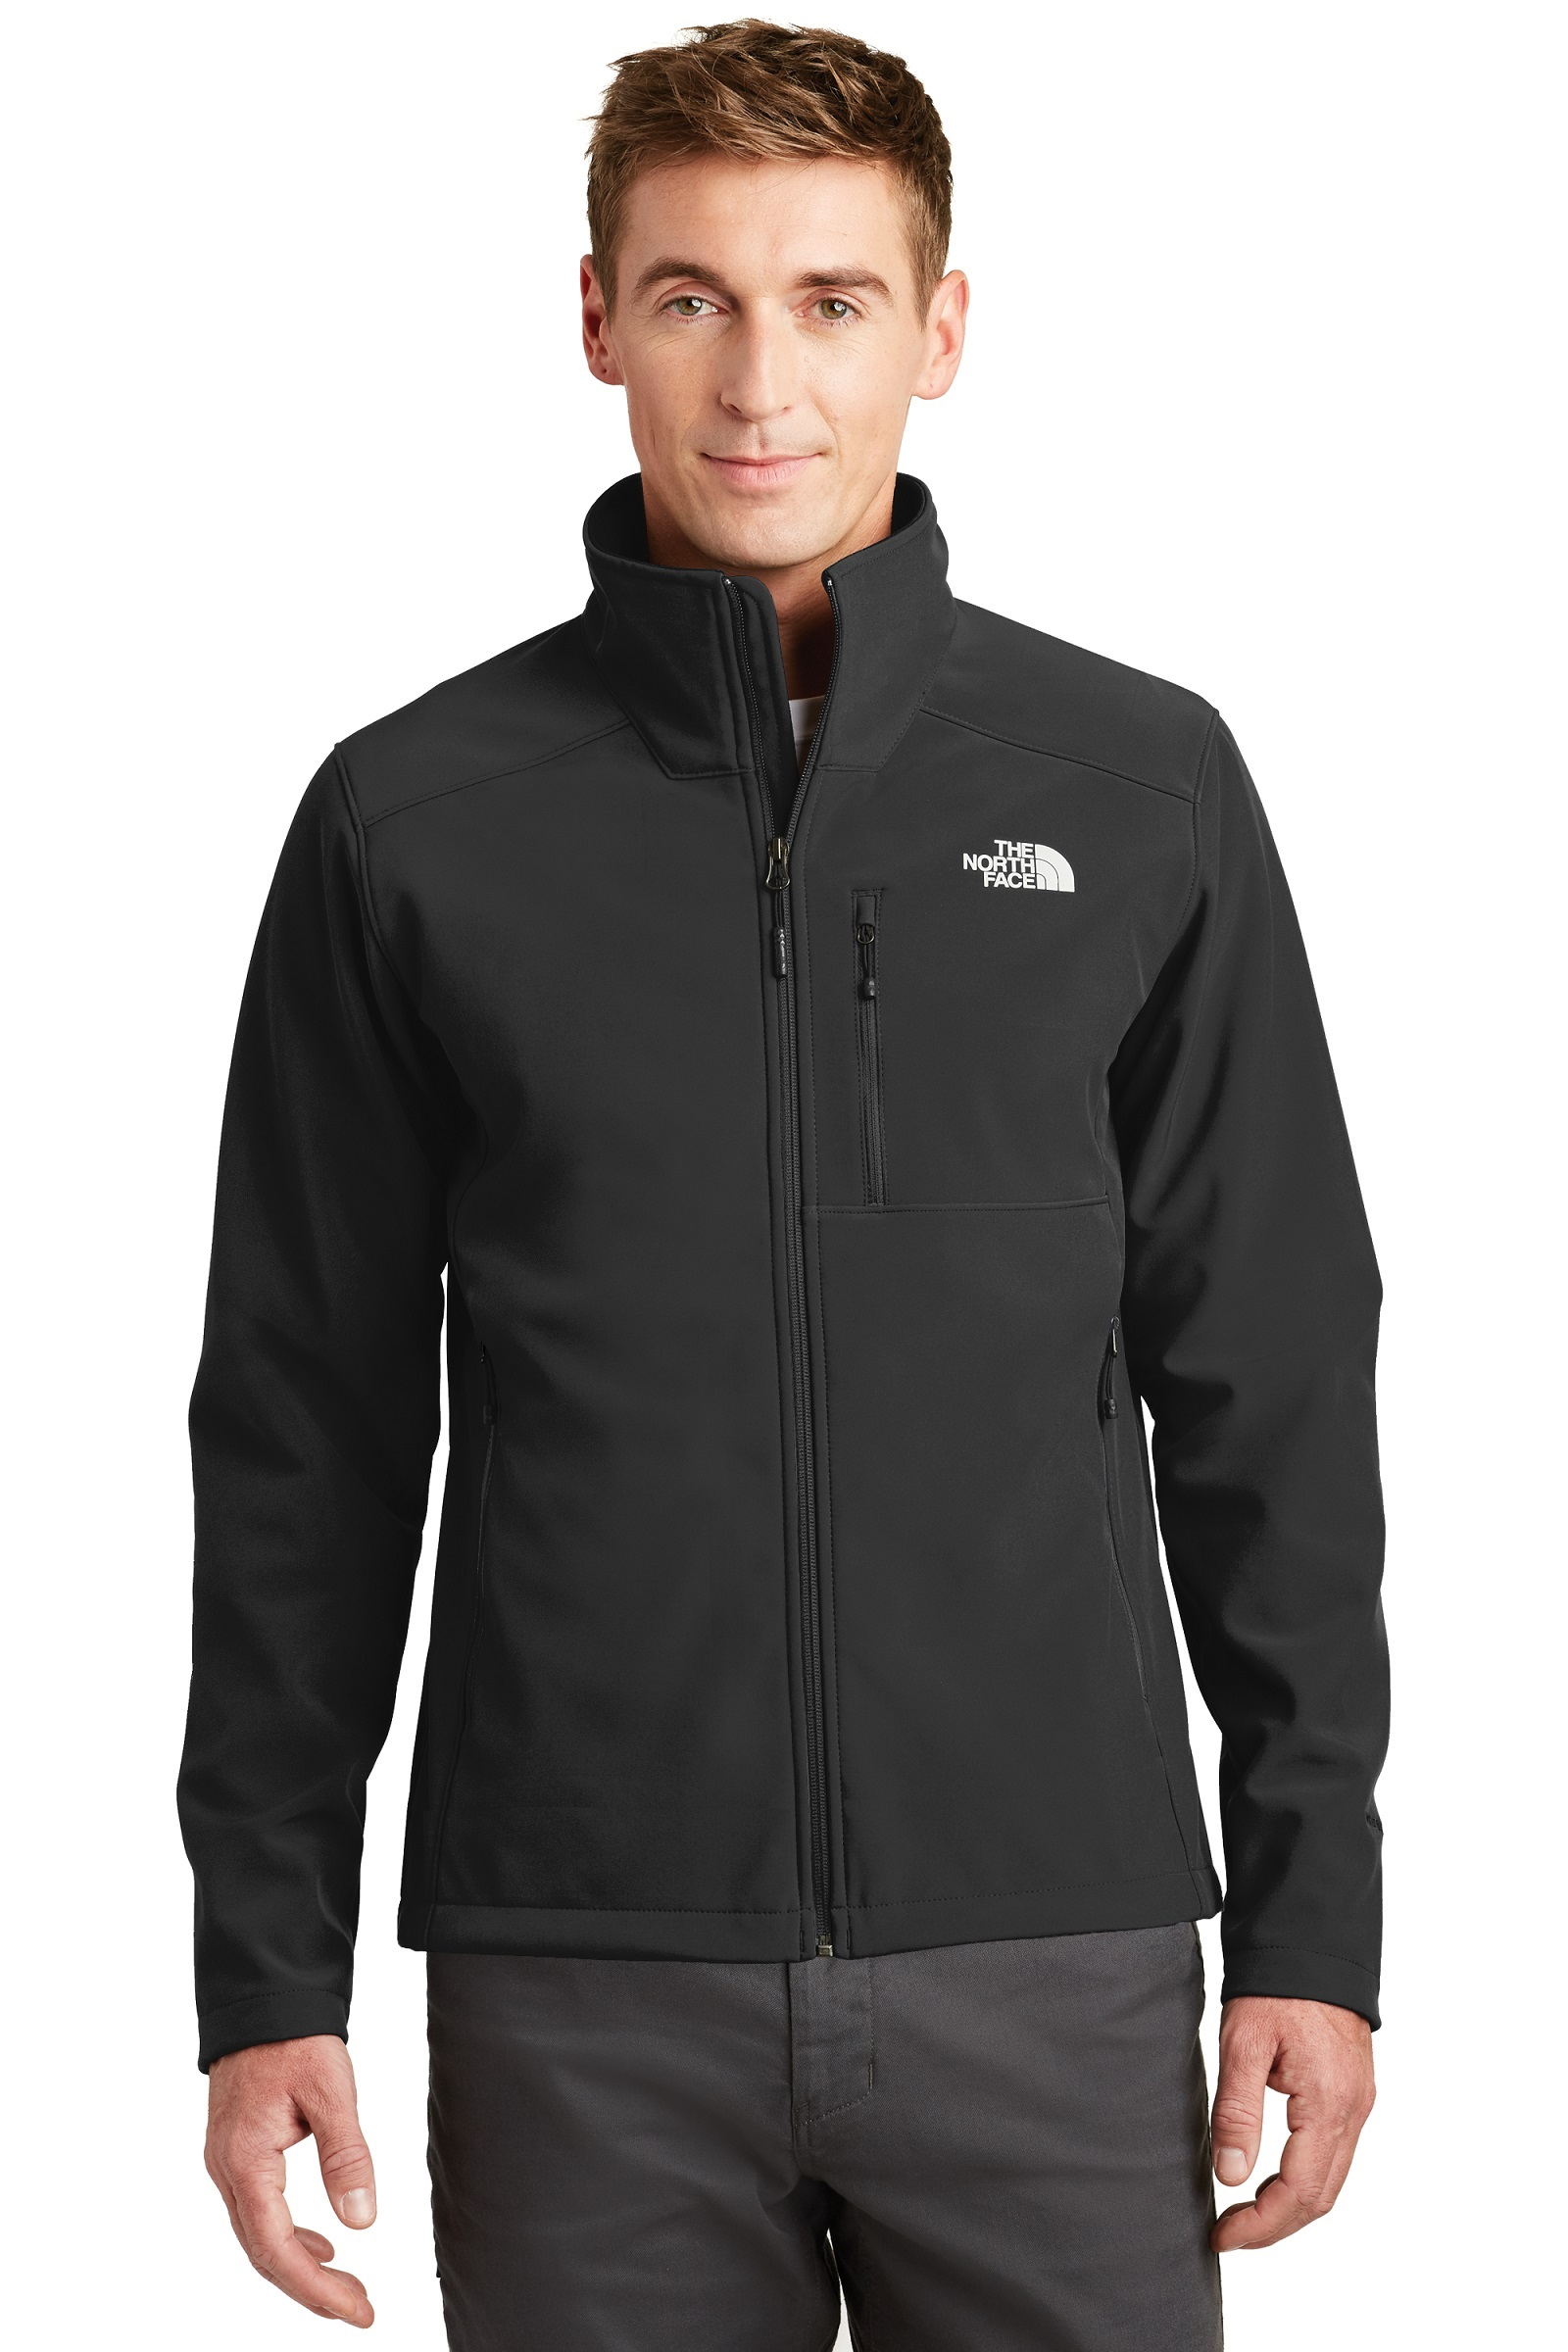 The North Face  Embroidered Men's Apex Barrier Soft Shell Jacket